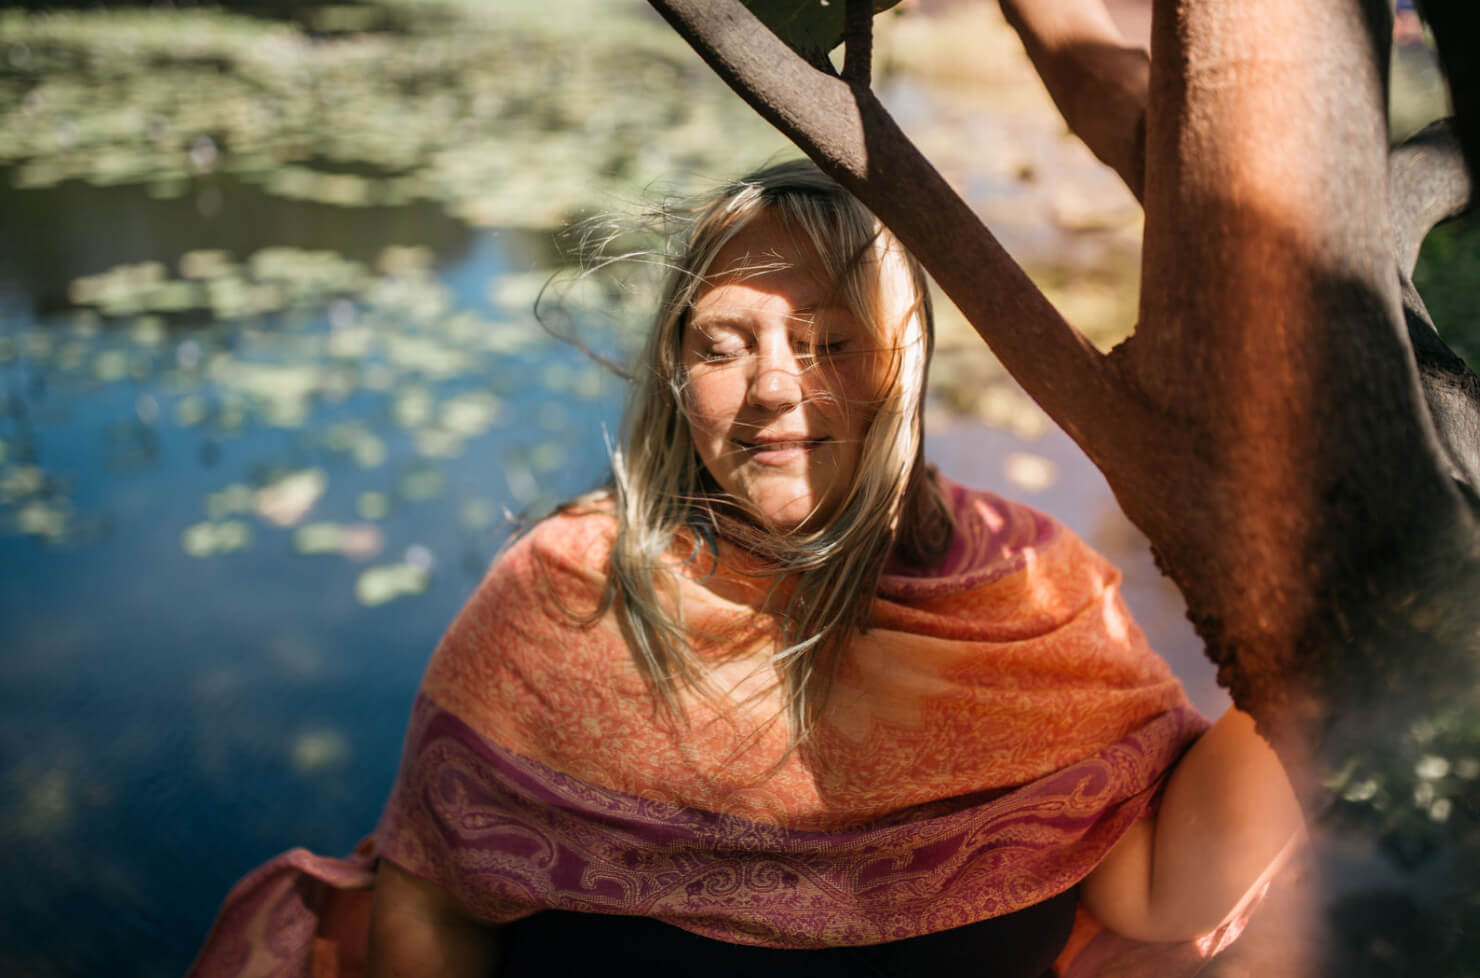 Woman eyes closed in front of river